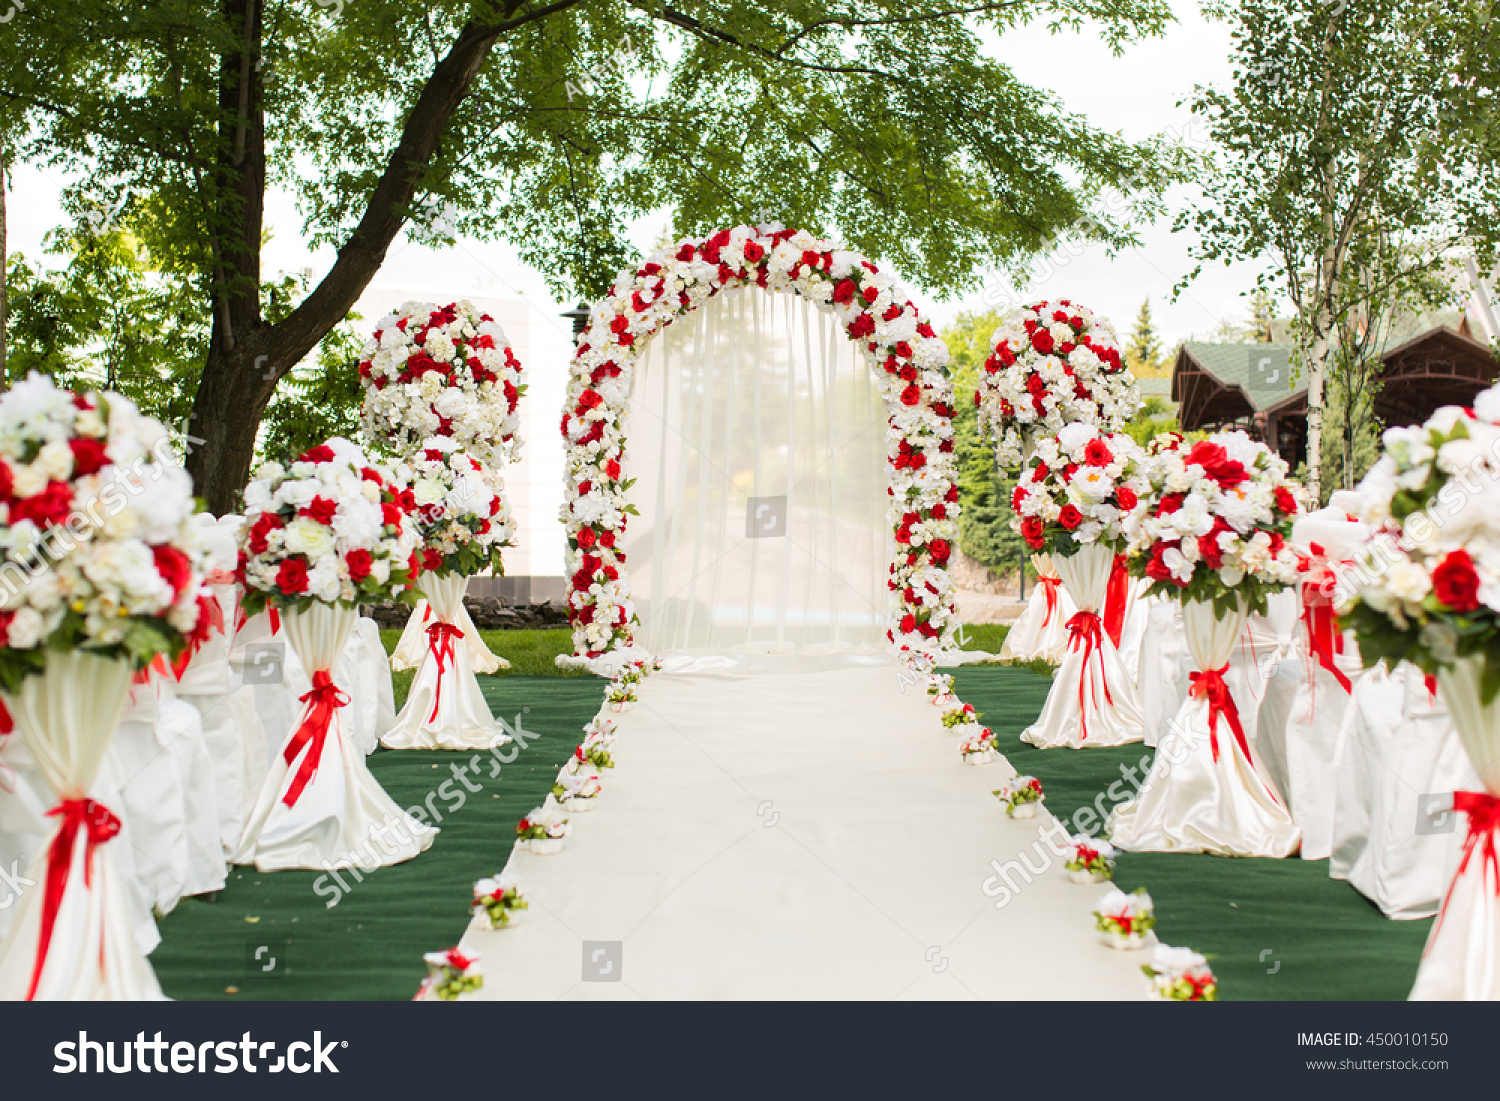 Wedding Ceremony Outdoors Wedding Arch Decorated Stock Photo ...